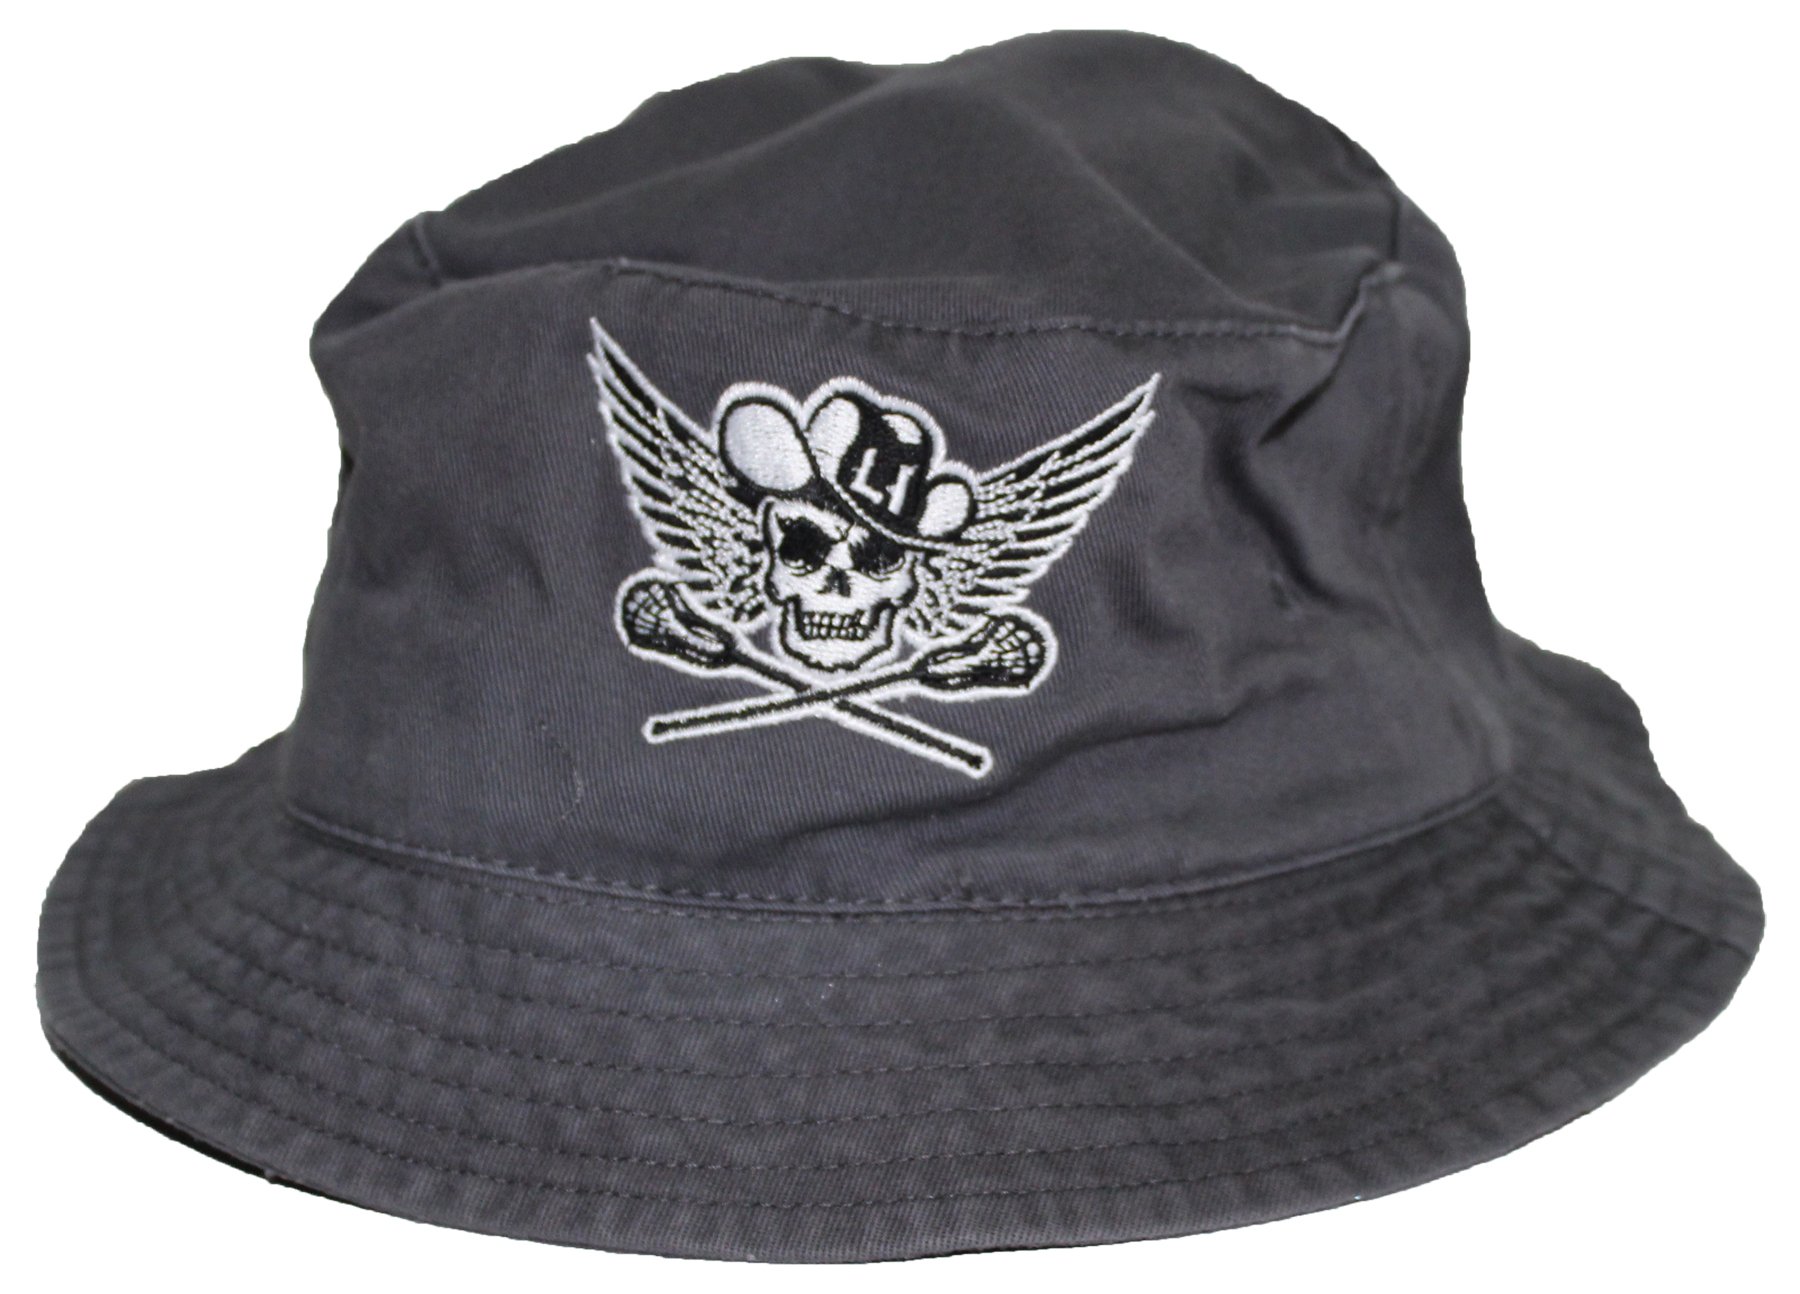 Outlaws_Bucket_Hat